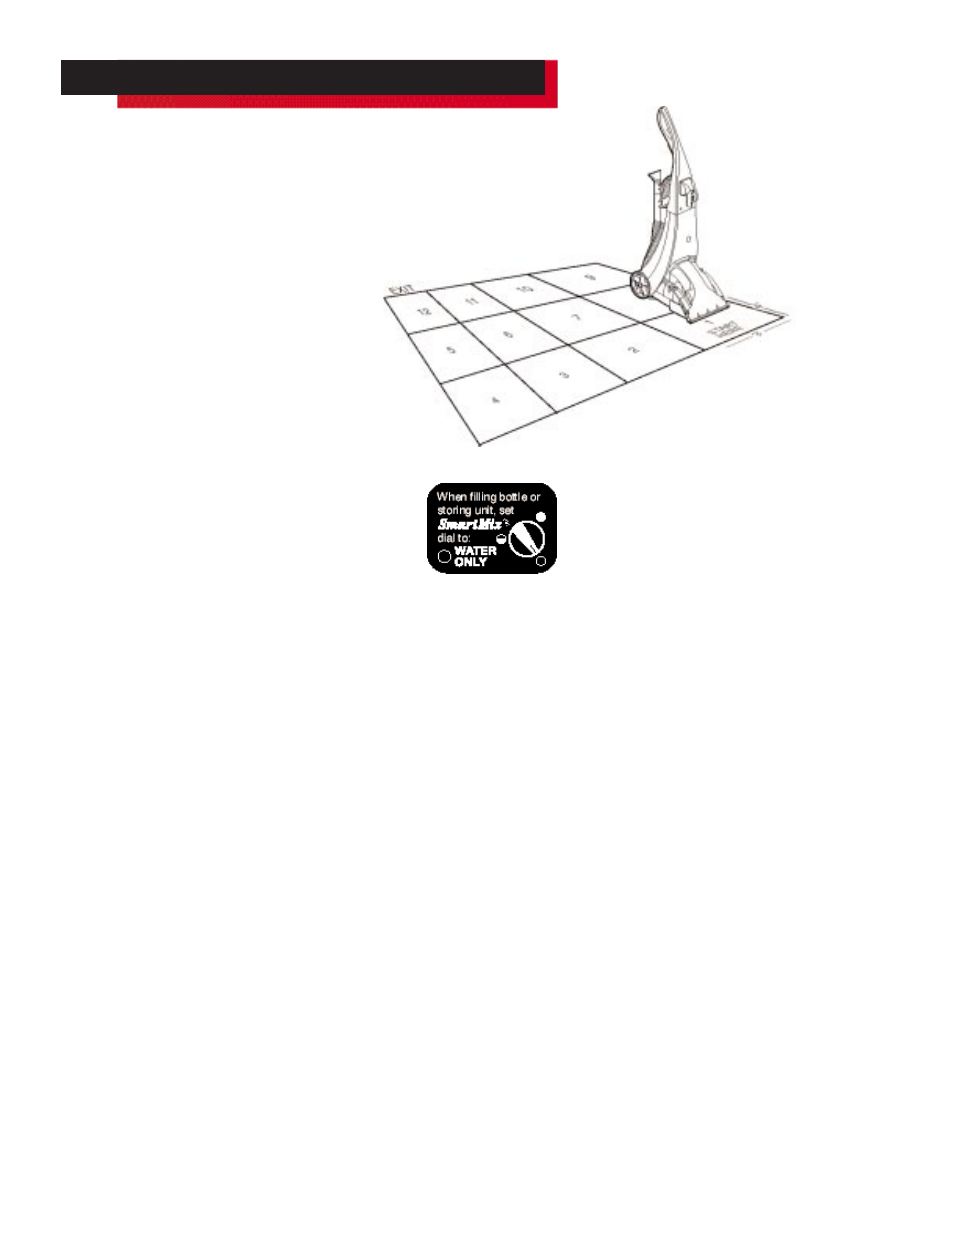 How to clean carpets, Machine preparation, Pre-treating (optional) | Bissell  POWERSTEAMER PROHEAT PLUS 16981 User Manual | Page 10 / 18